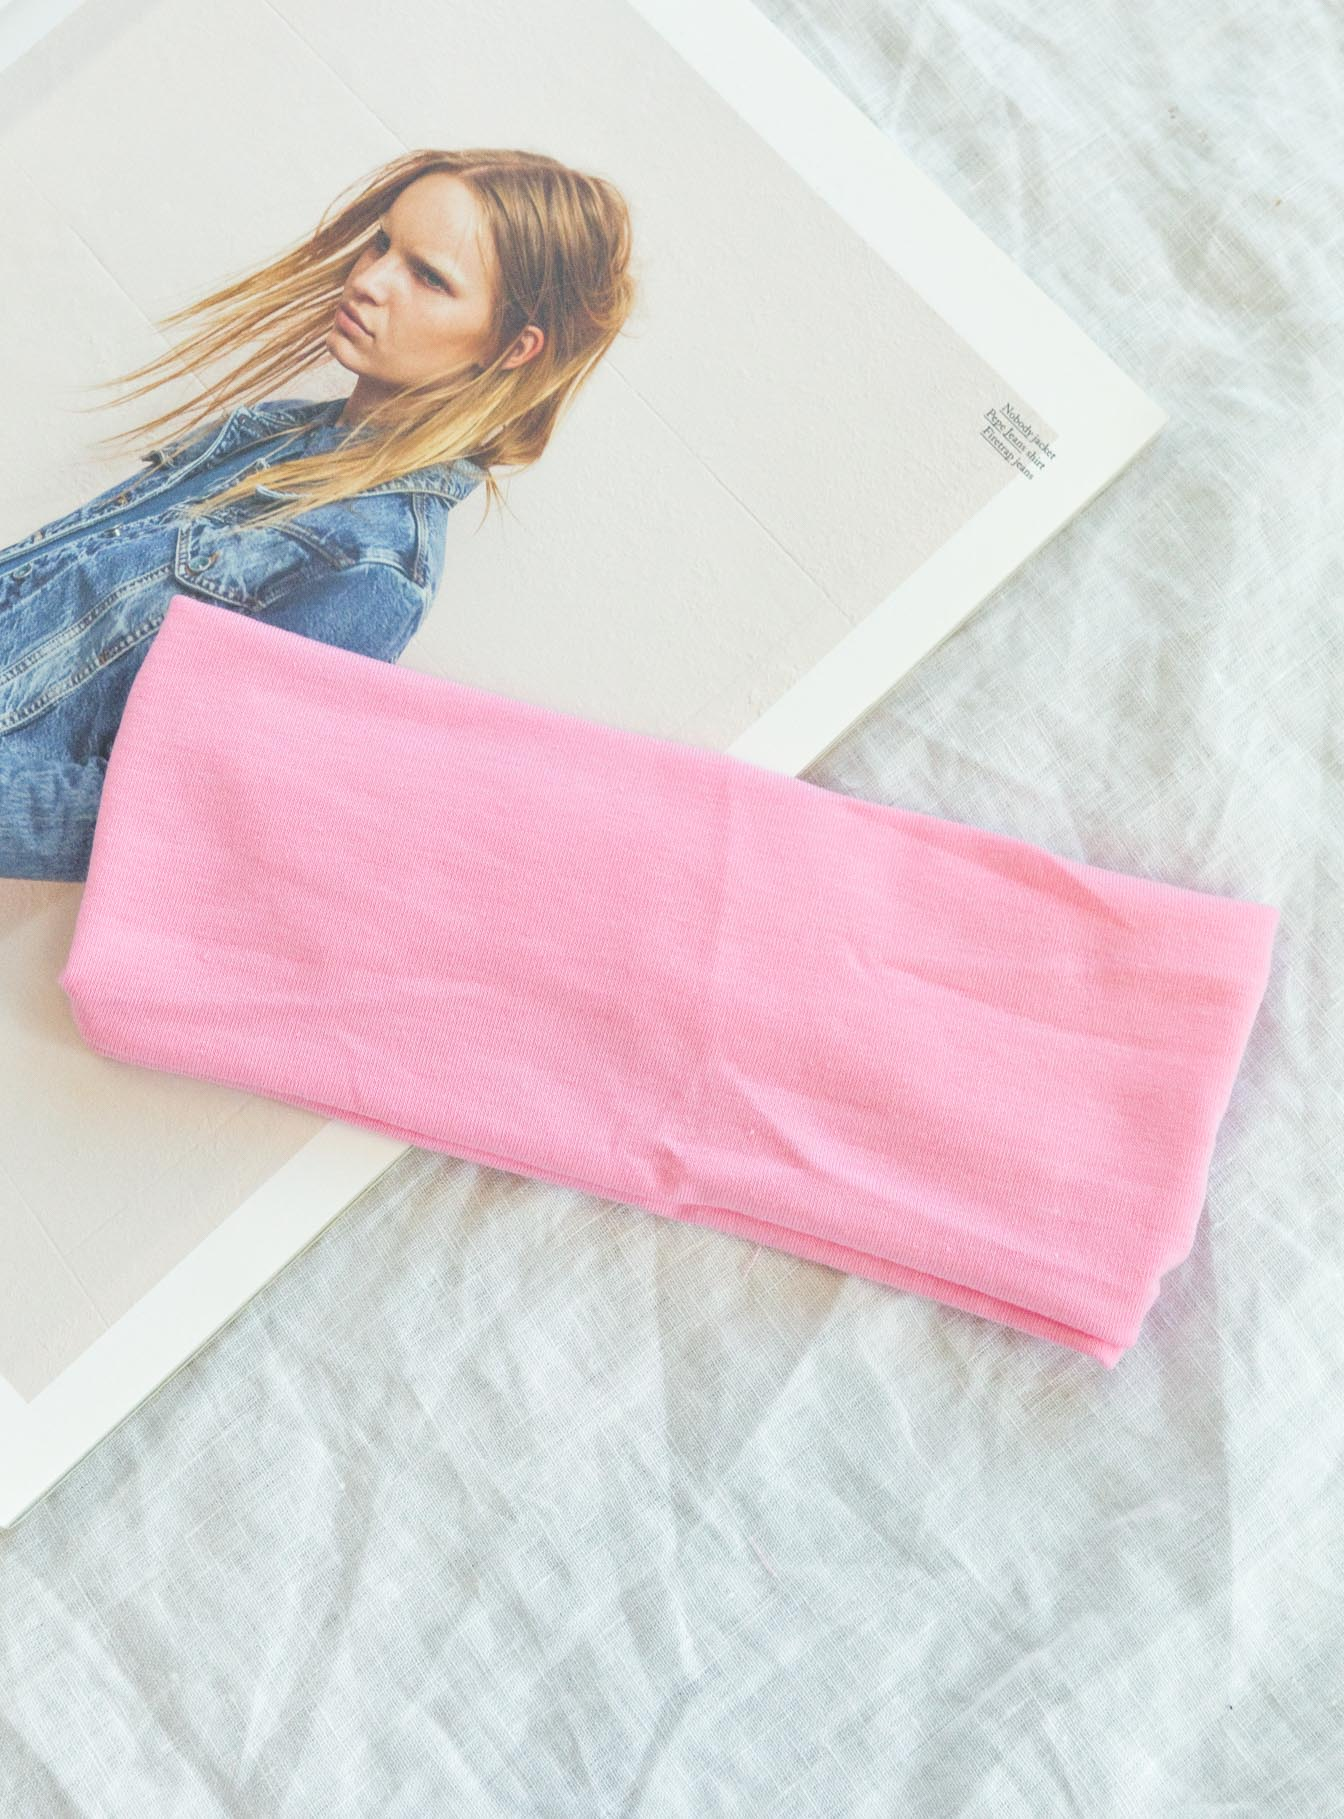 The Juney Headband Pink